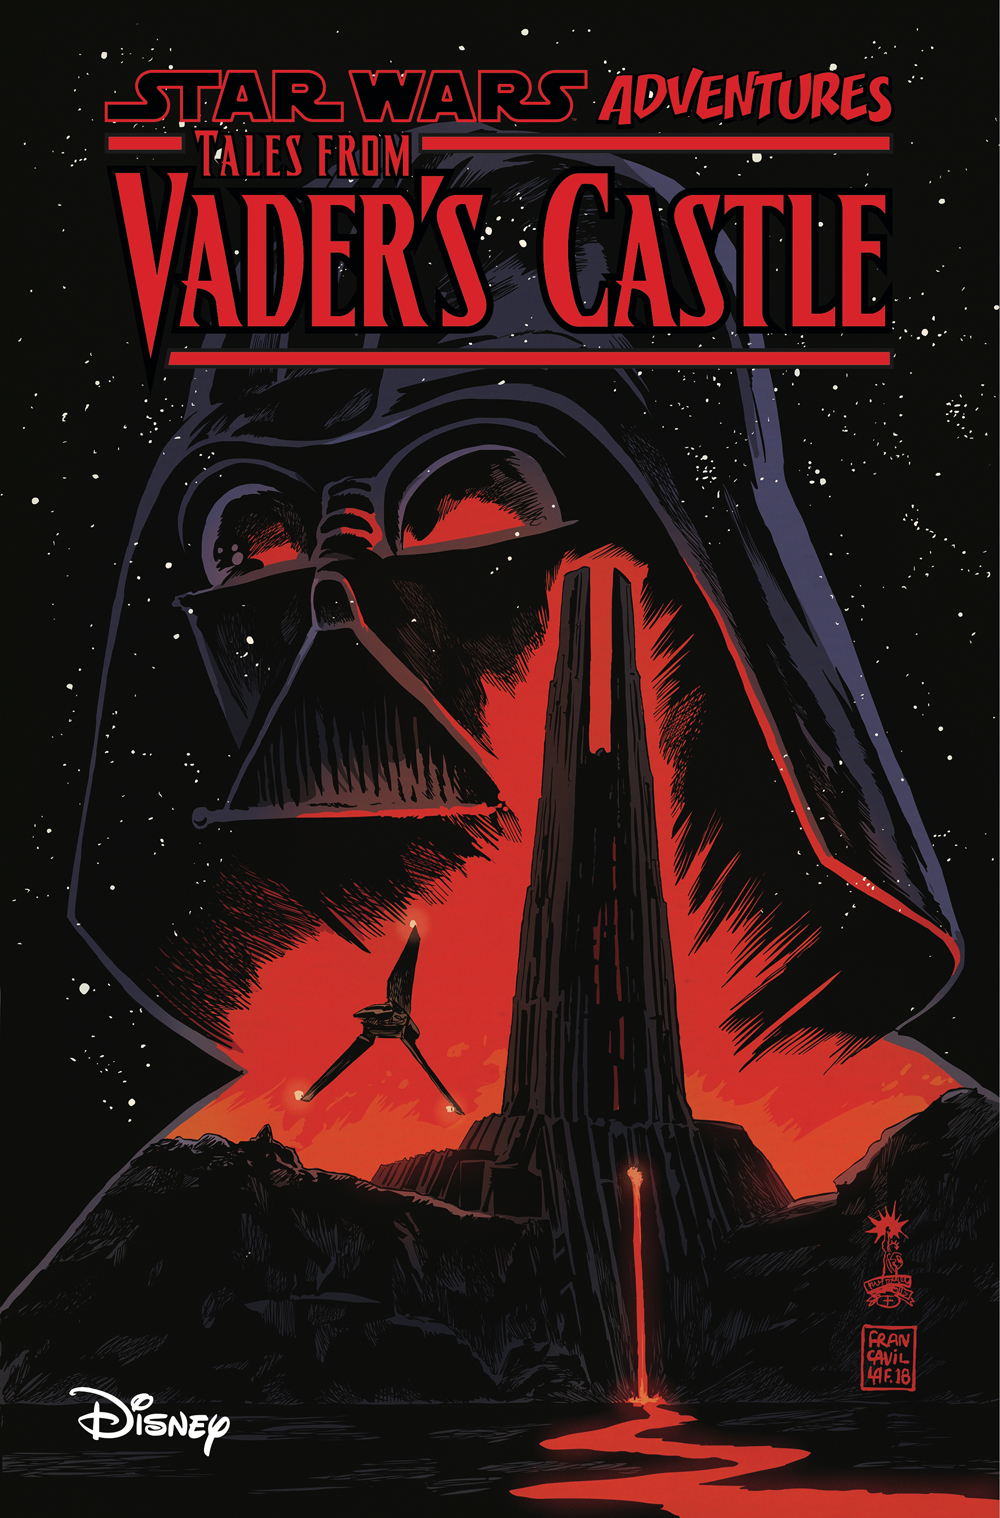 STAR WARS ADVENTURES TALES FROM VADERS CASTLE TP (JAN190801)